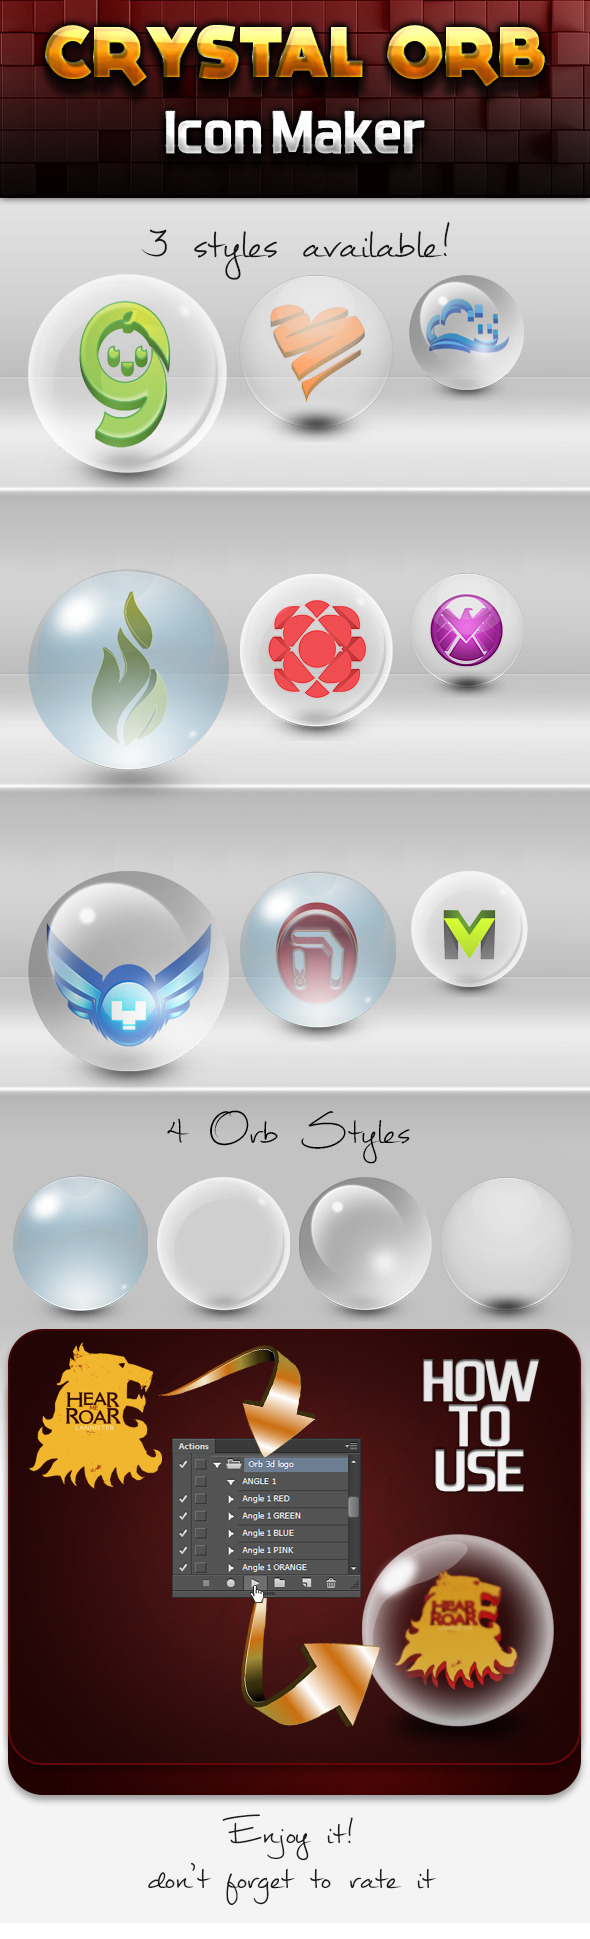 Crystal Orb 3d Icon Maker - Utilities Actions